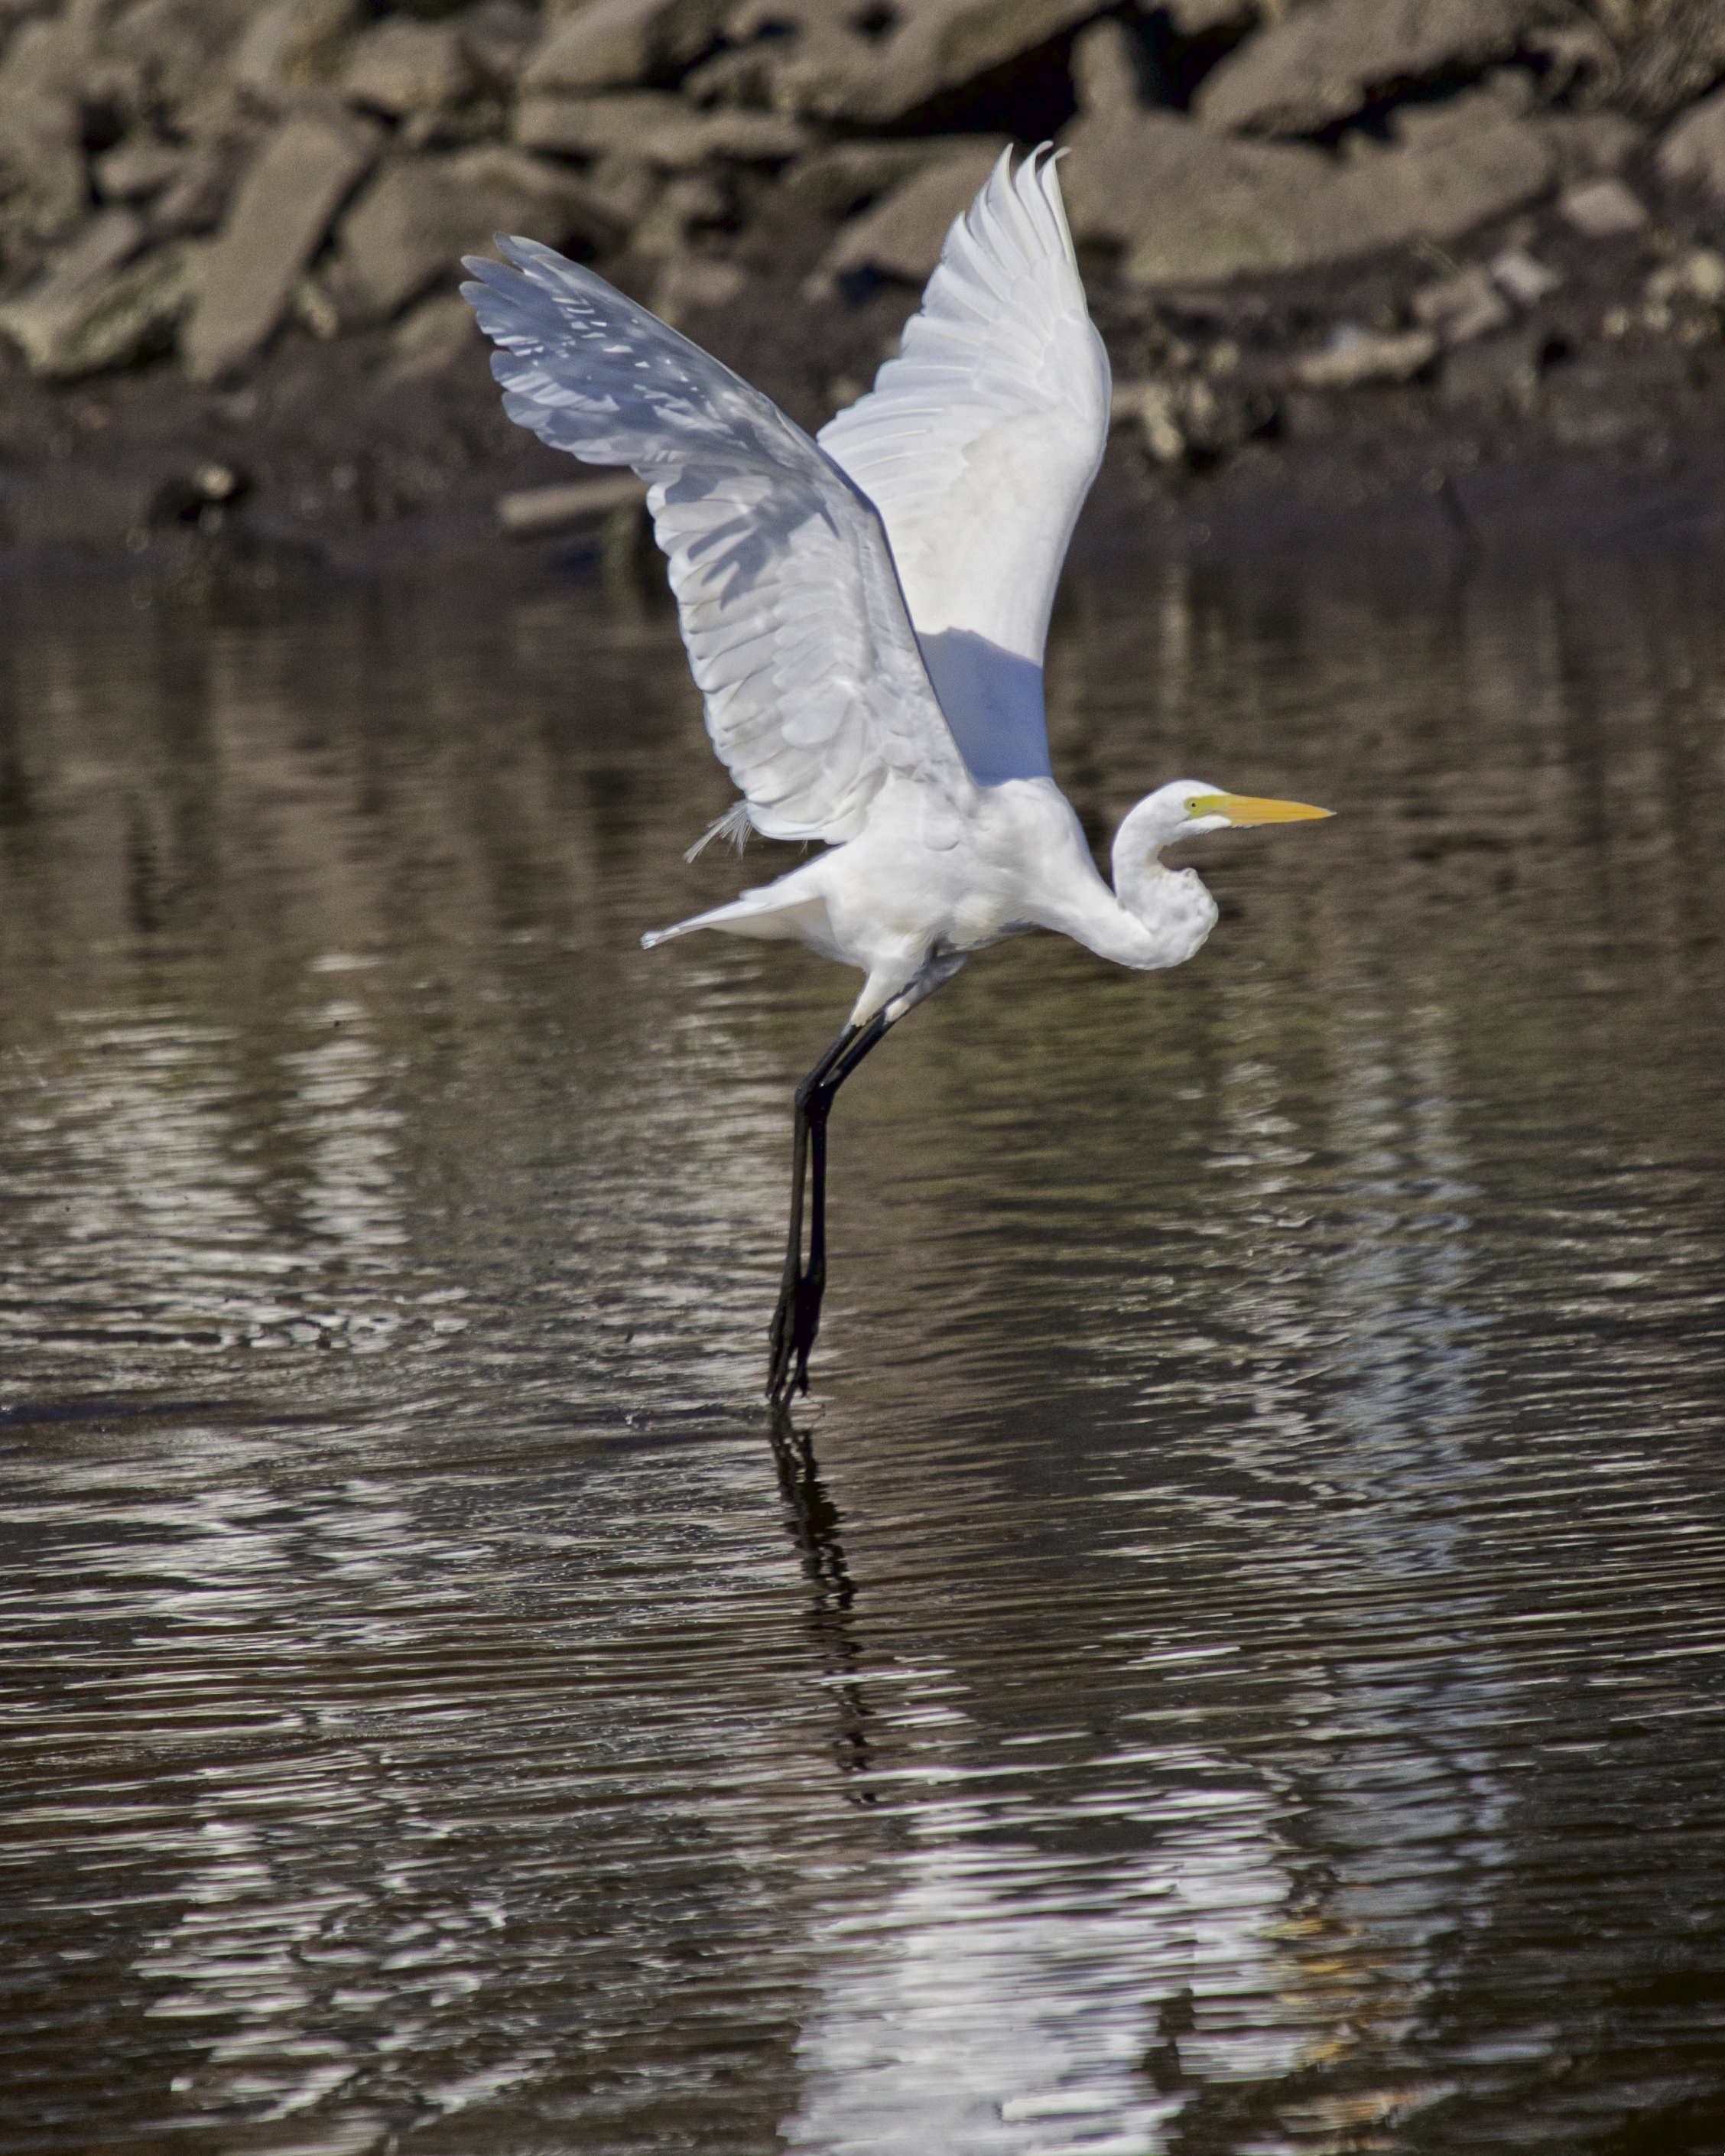 The music of morning begins..the long white  wings lift up to dance on the water